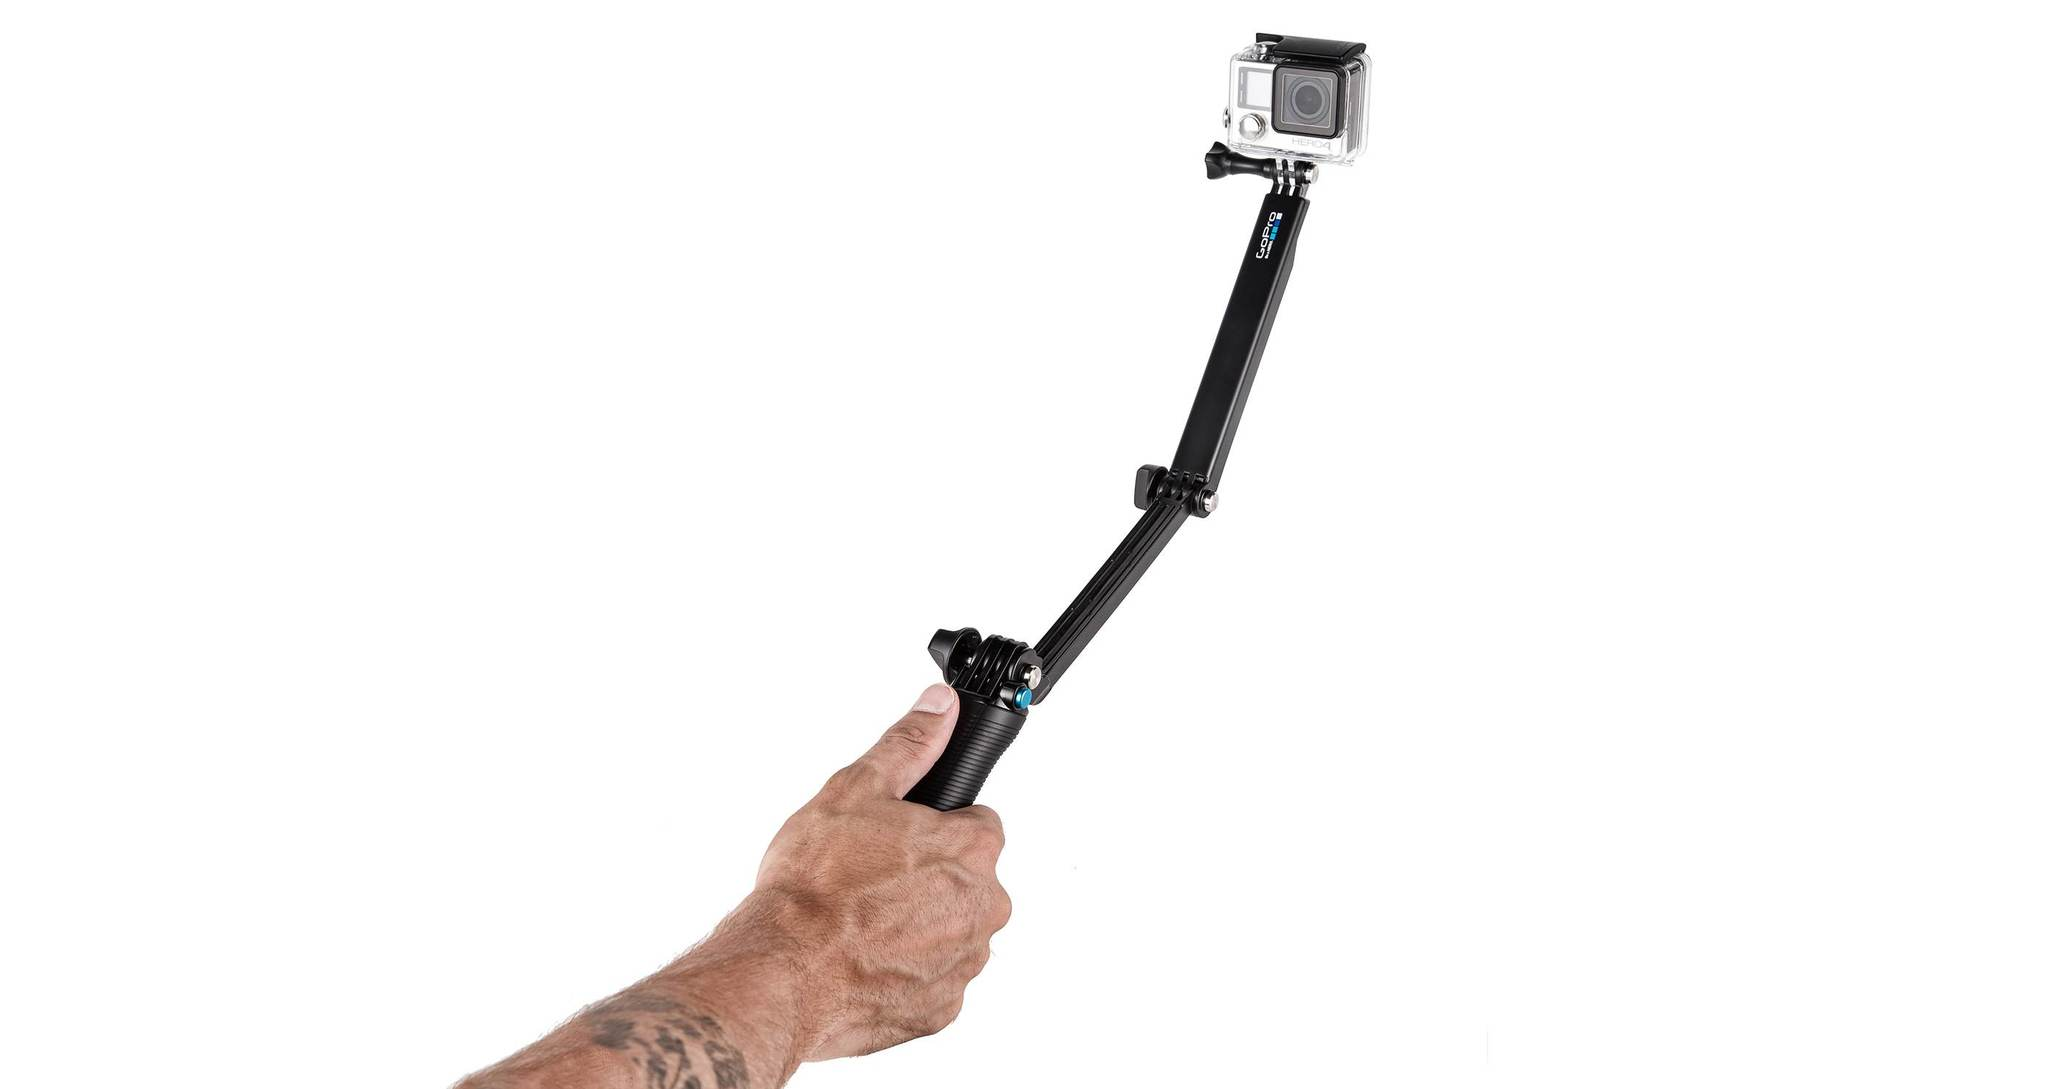 Монопод-штатив GoPro AFAEM-001 3-Way Mount - Grip/Arm/Tripod в руке